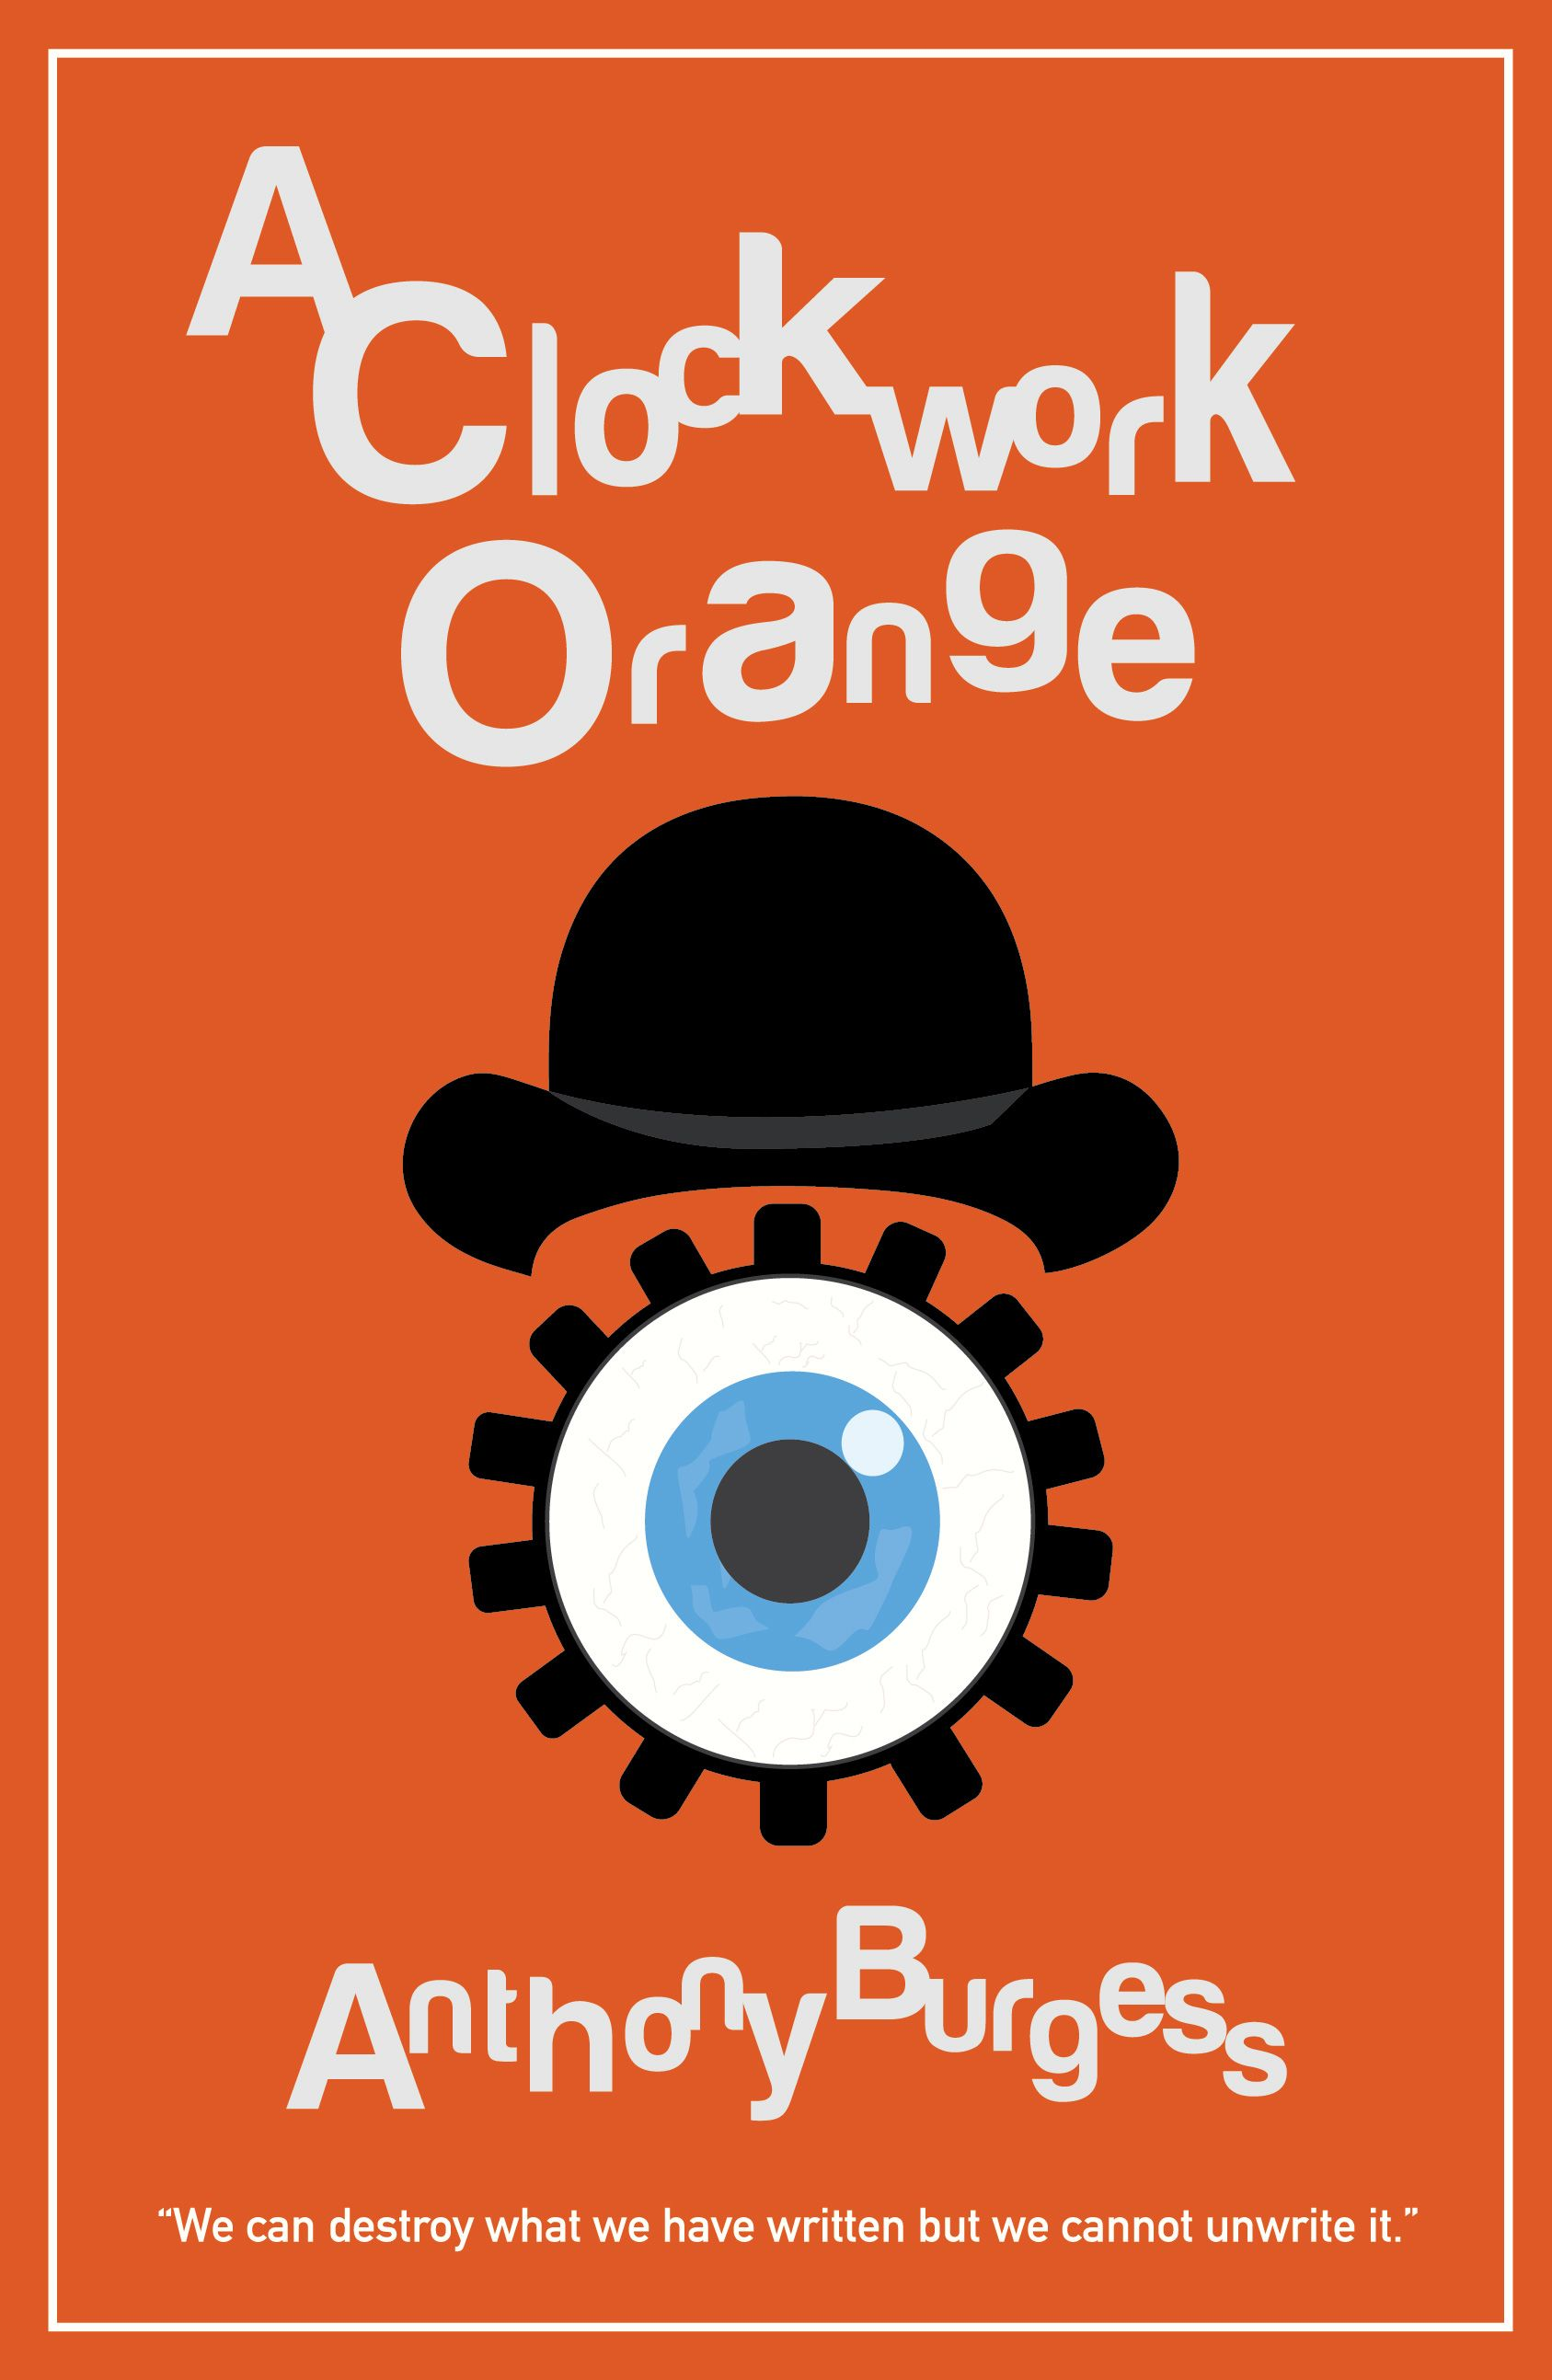 A Clockwork Orange by Anthony Burgess Book Poster, 2020